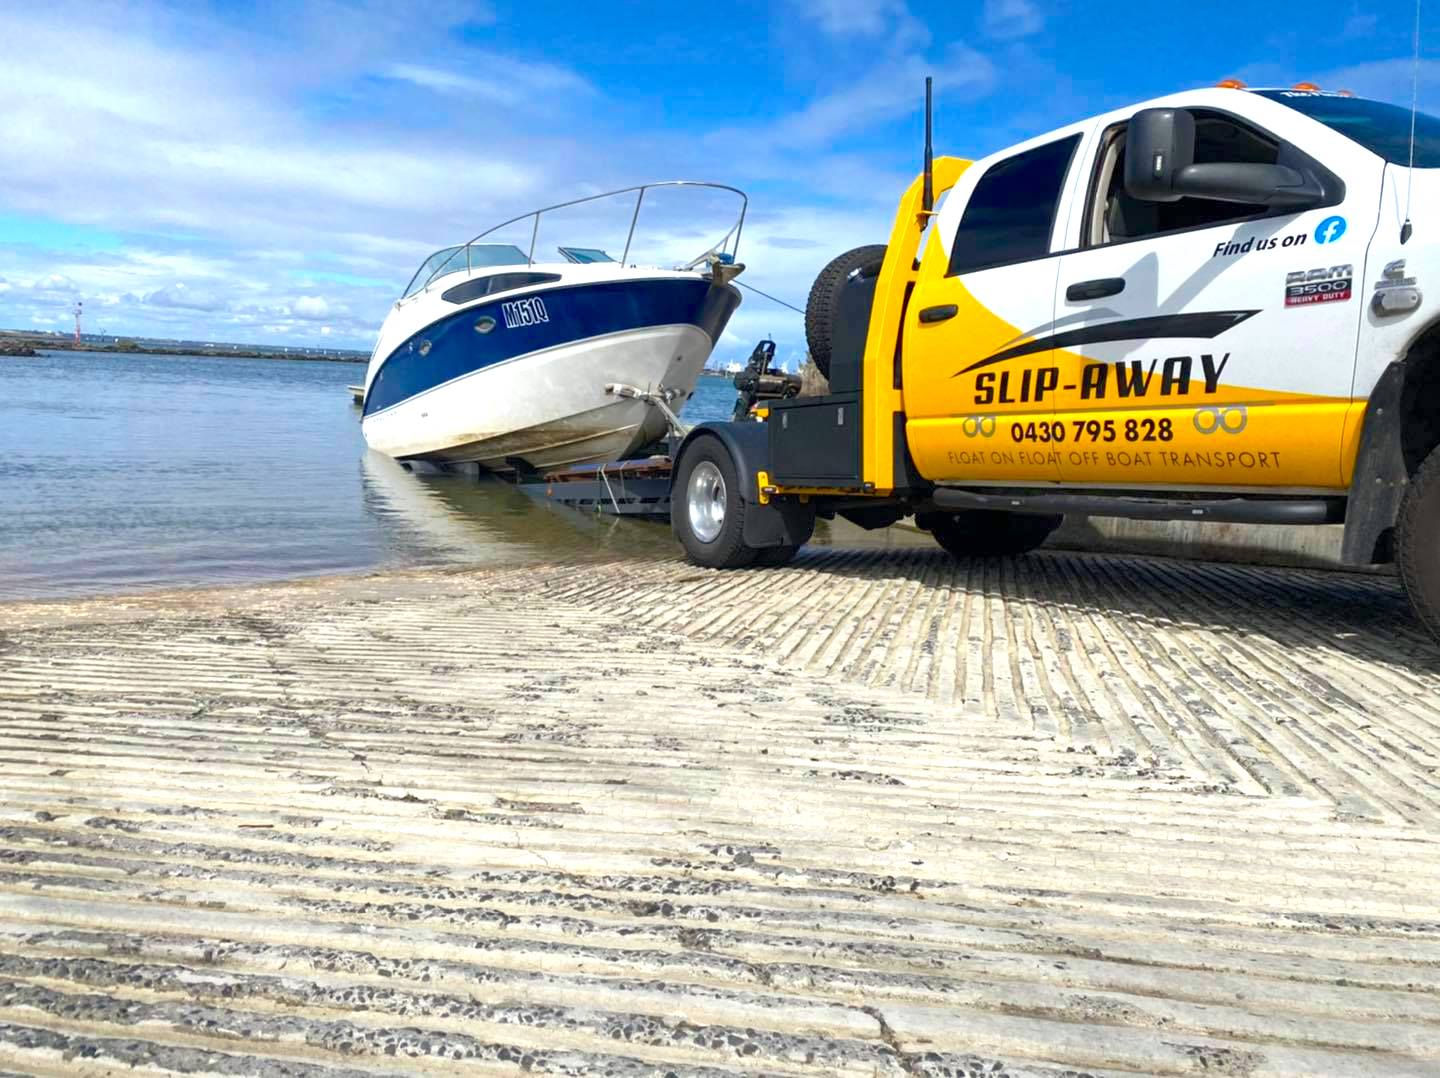 How To Transport A Boat To Or From Batemans Bay with Slip Away